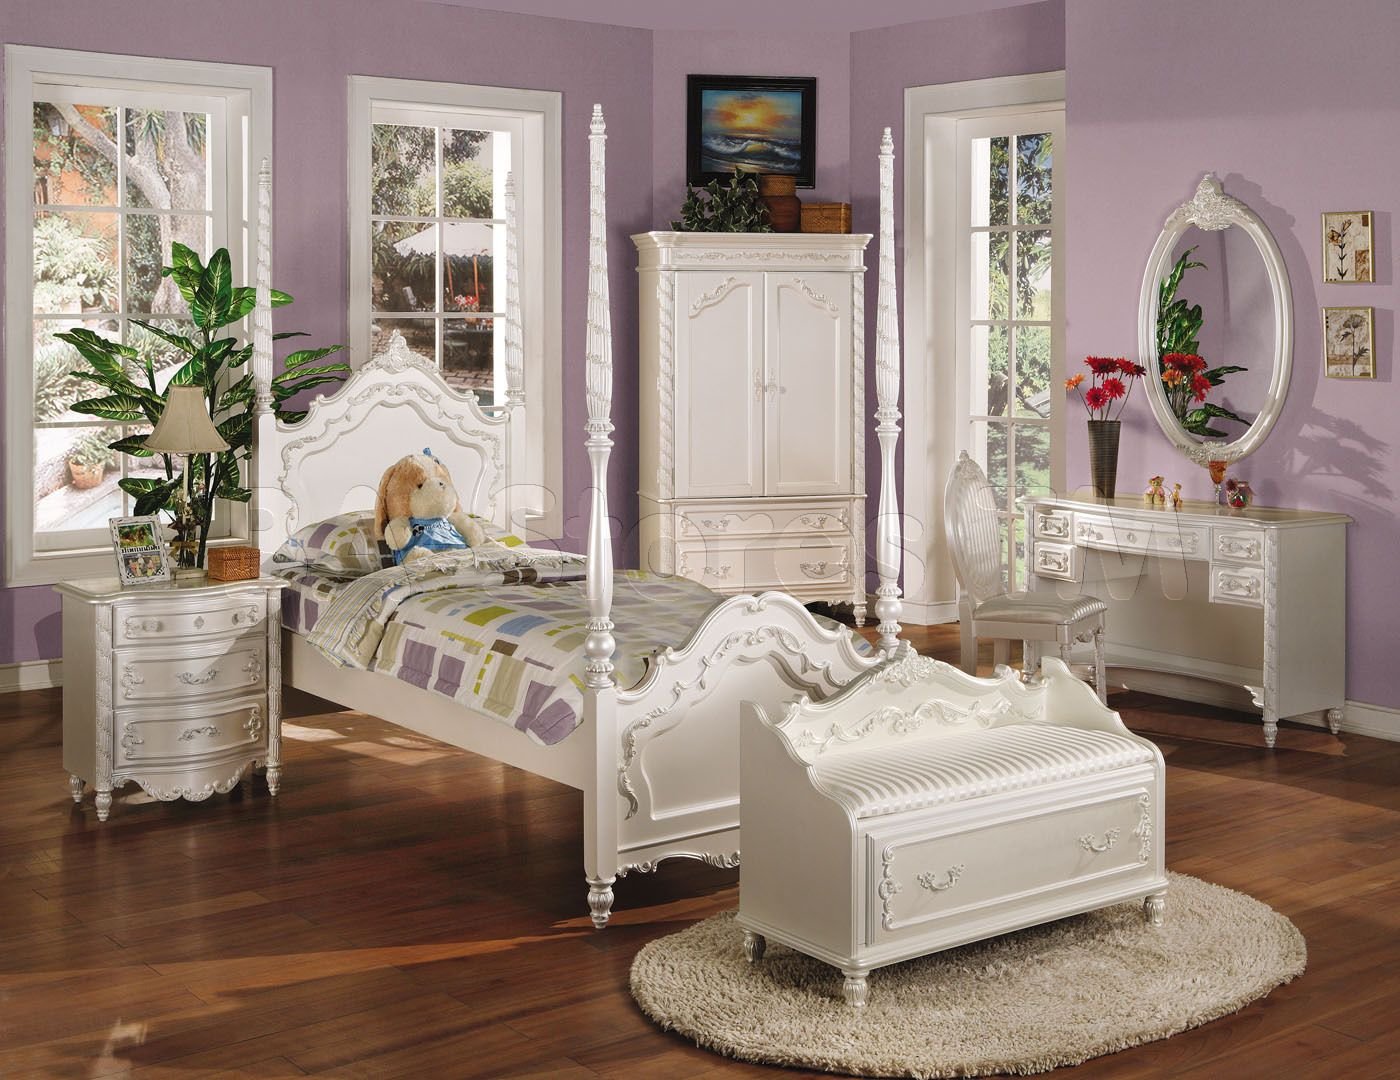 Acme Furniture Pearl White Wood Youth Twin Post Bed For Girls